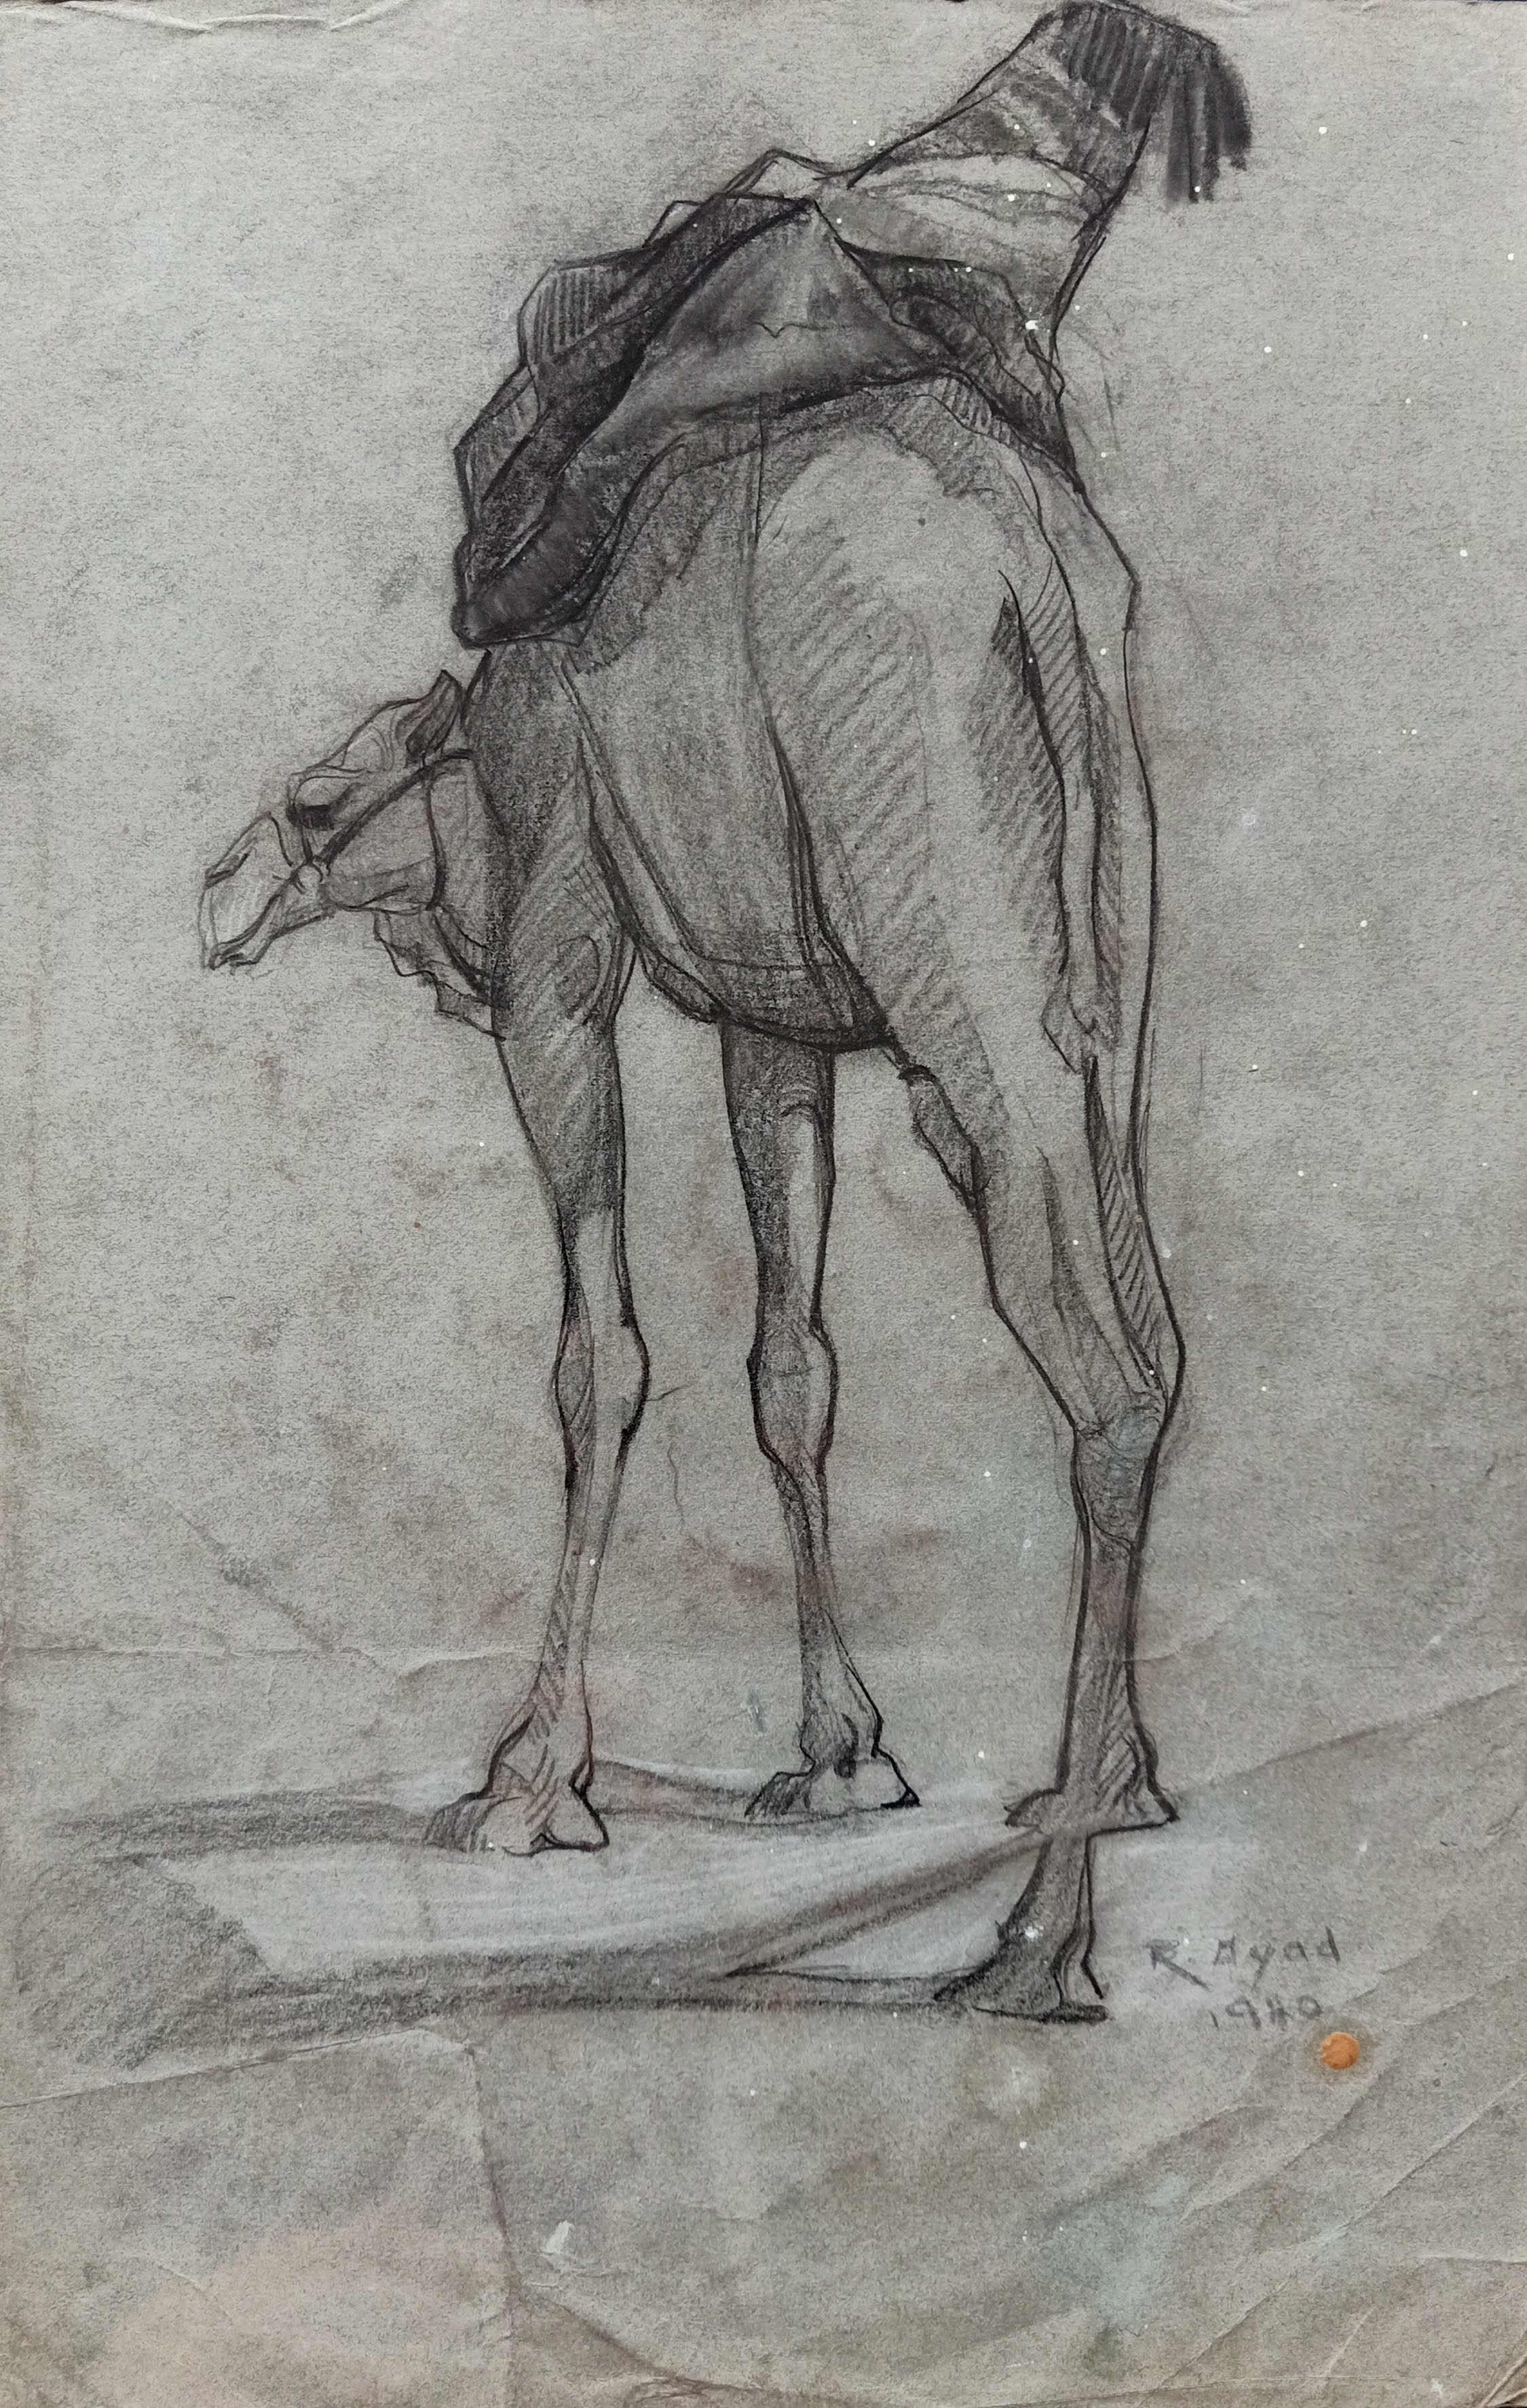 Ragheb Ayad, Dromadaire, 1940. Pencil on paper 45×29 cm Signed and dated bottom right.